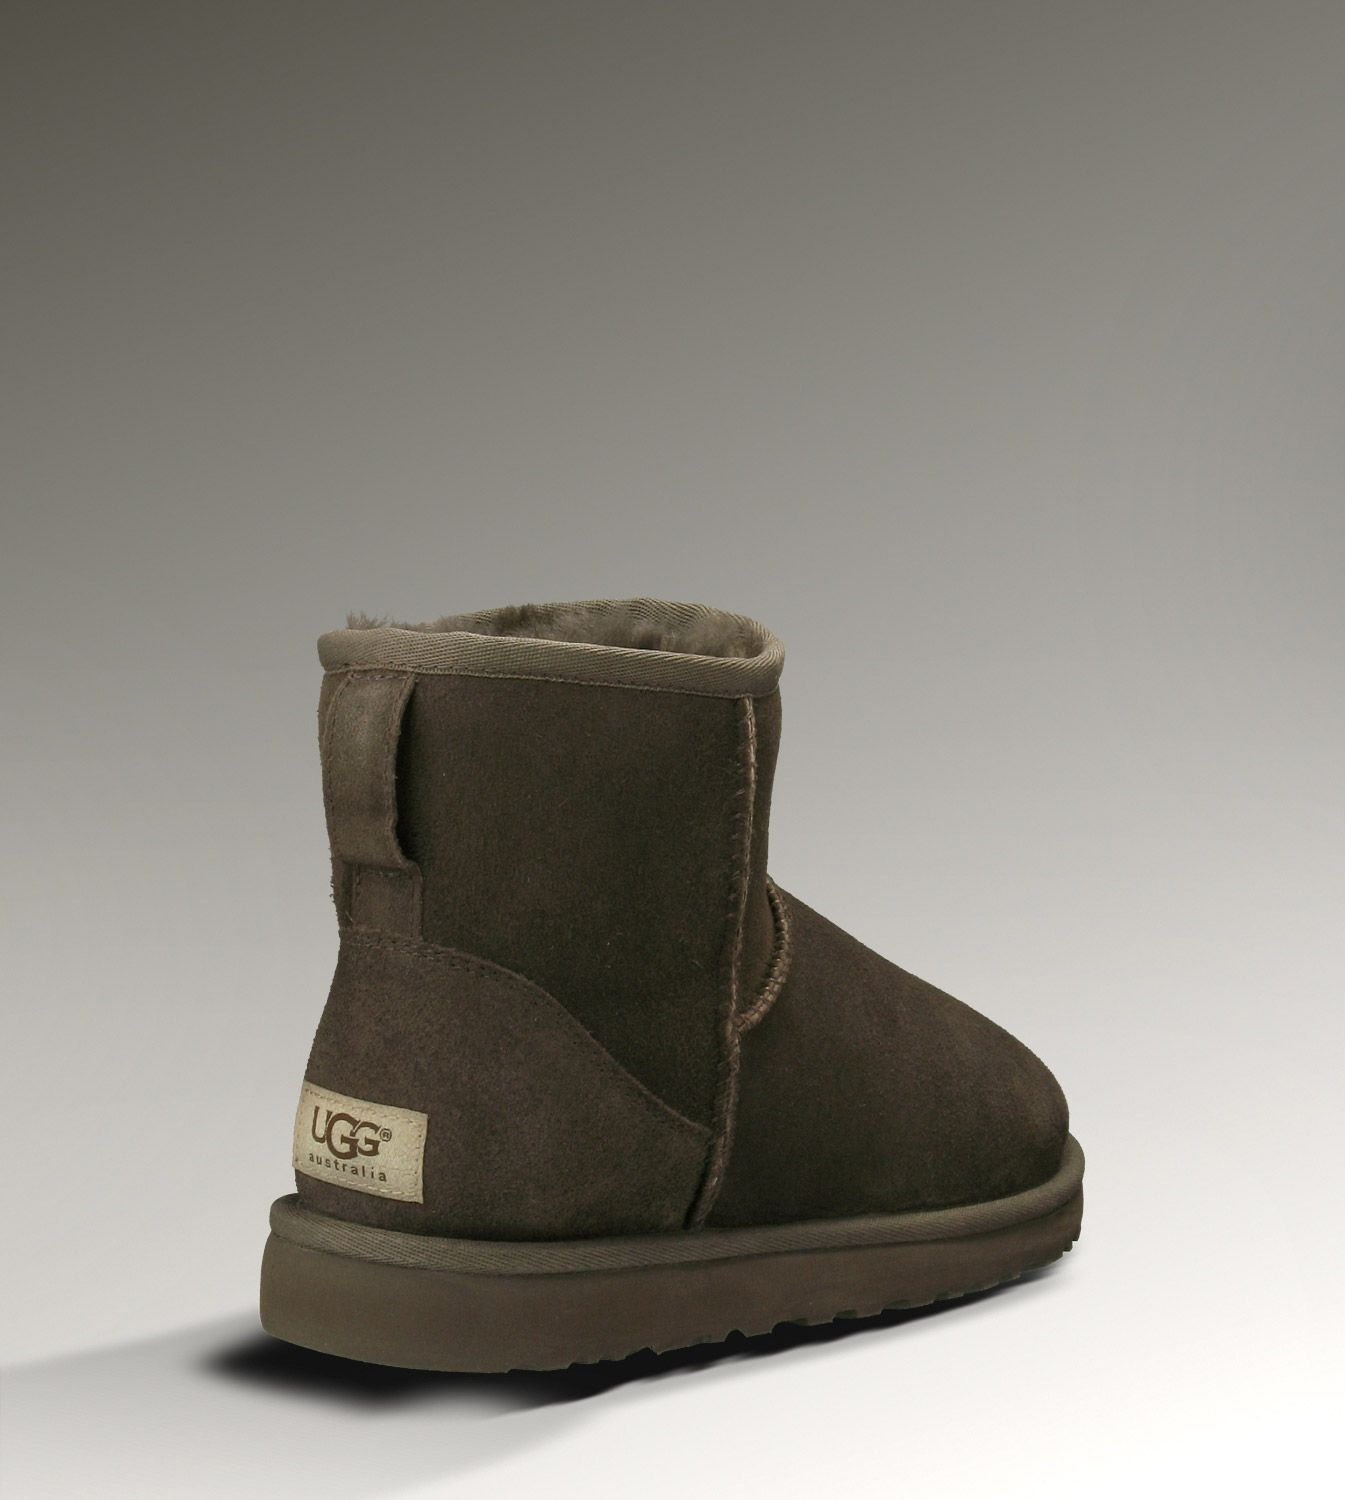 be3302651ad Ugg Classic Mini 5854 Chocolate Boots | Crafts | Uggs, Ugg classic ...